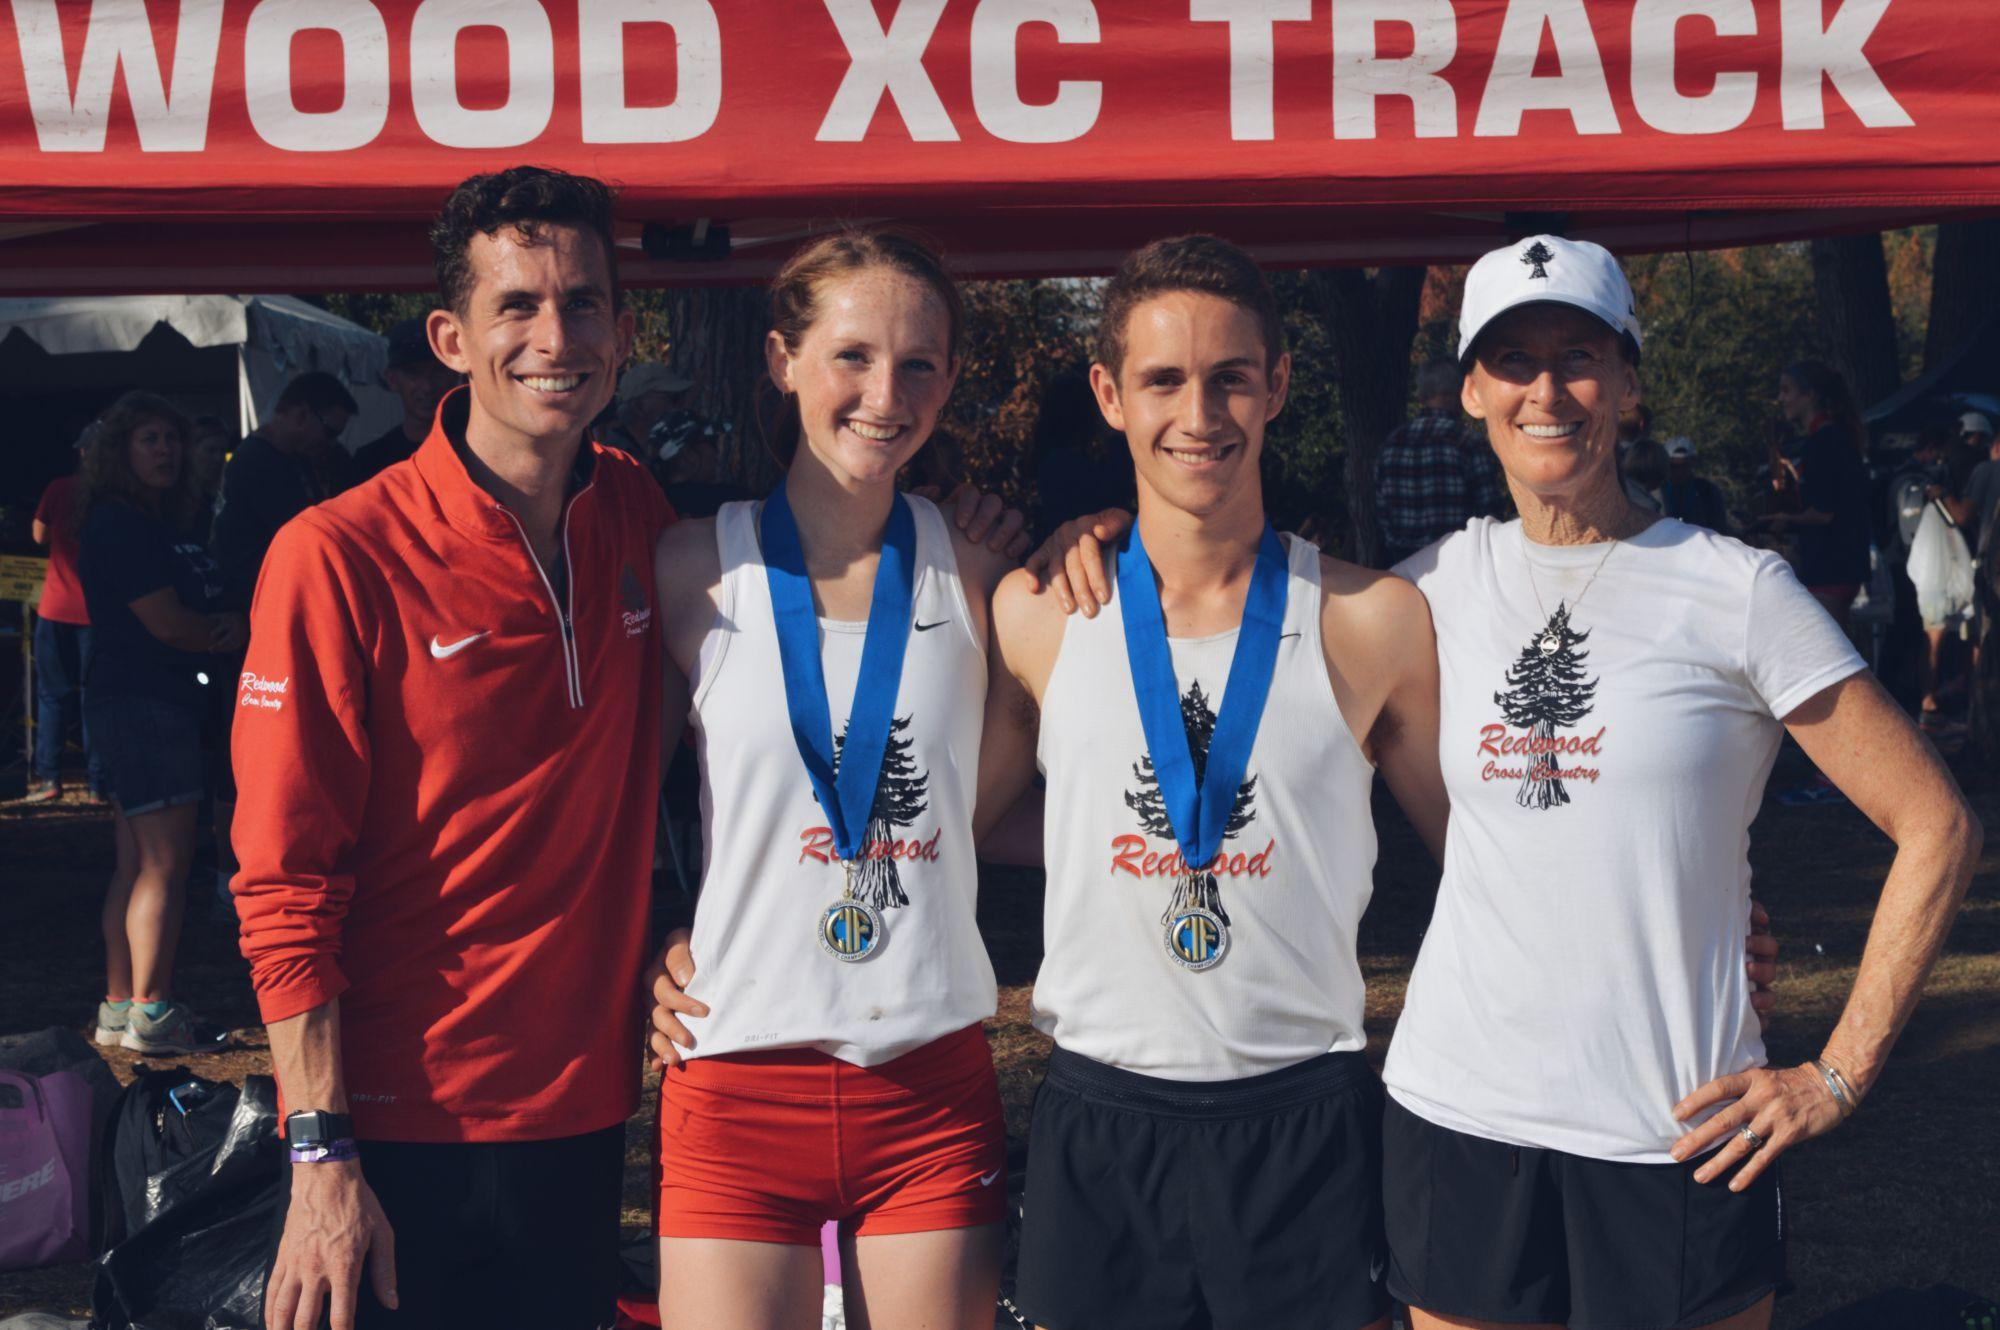 Cross country duo victorious at state cross country championships